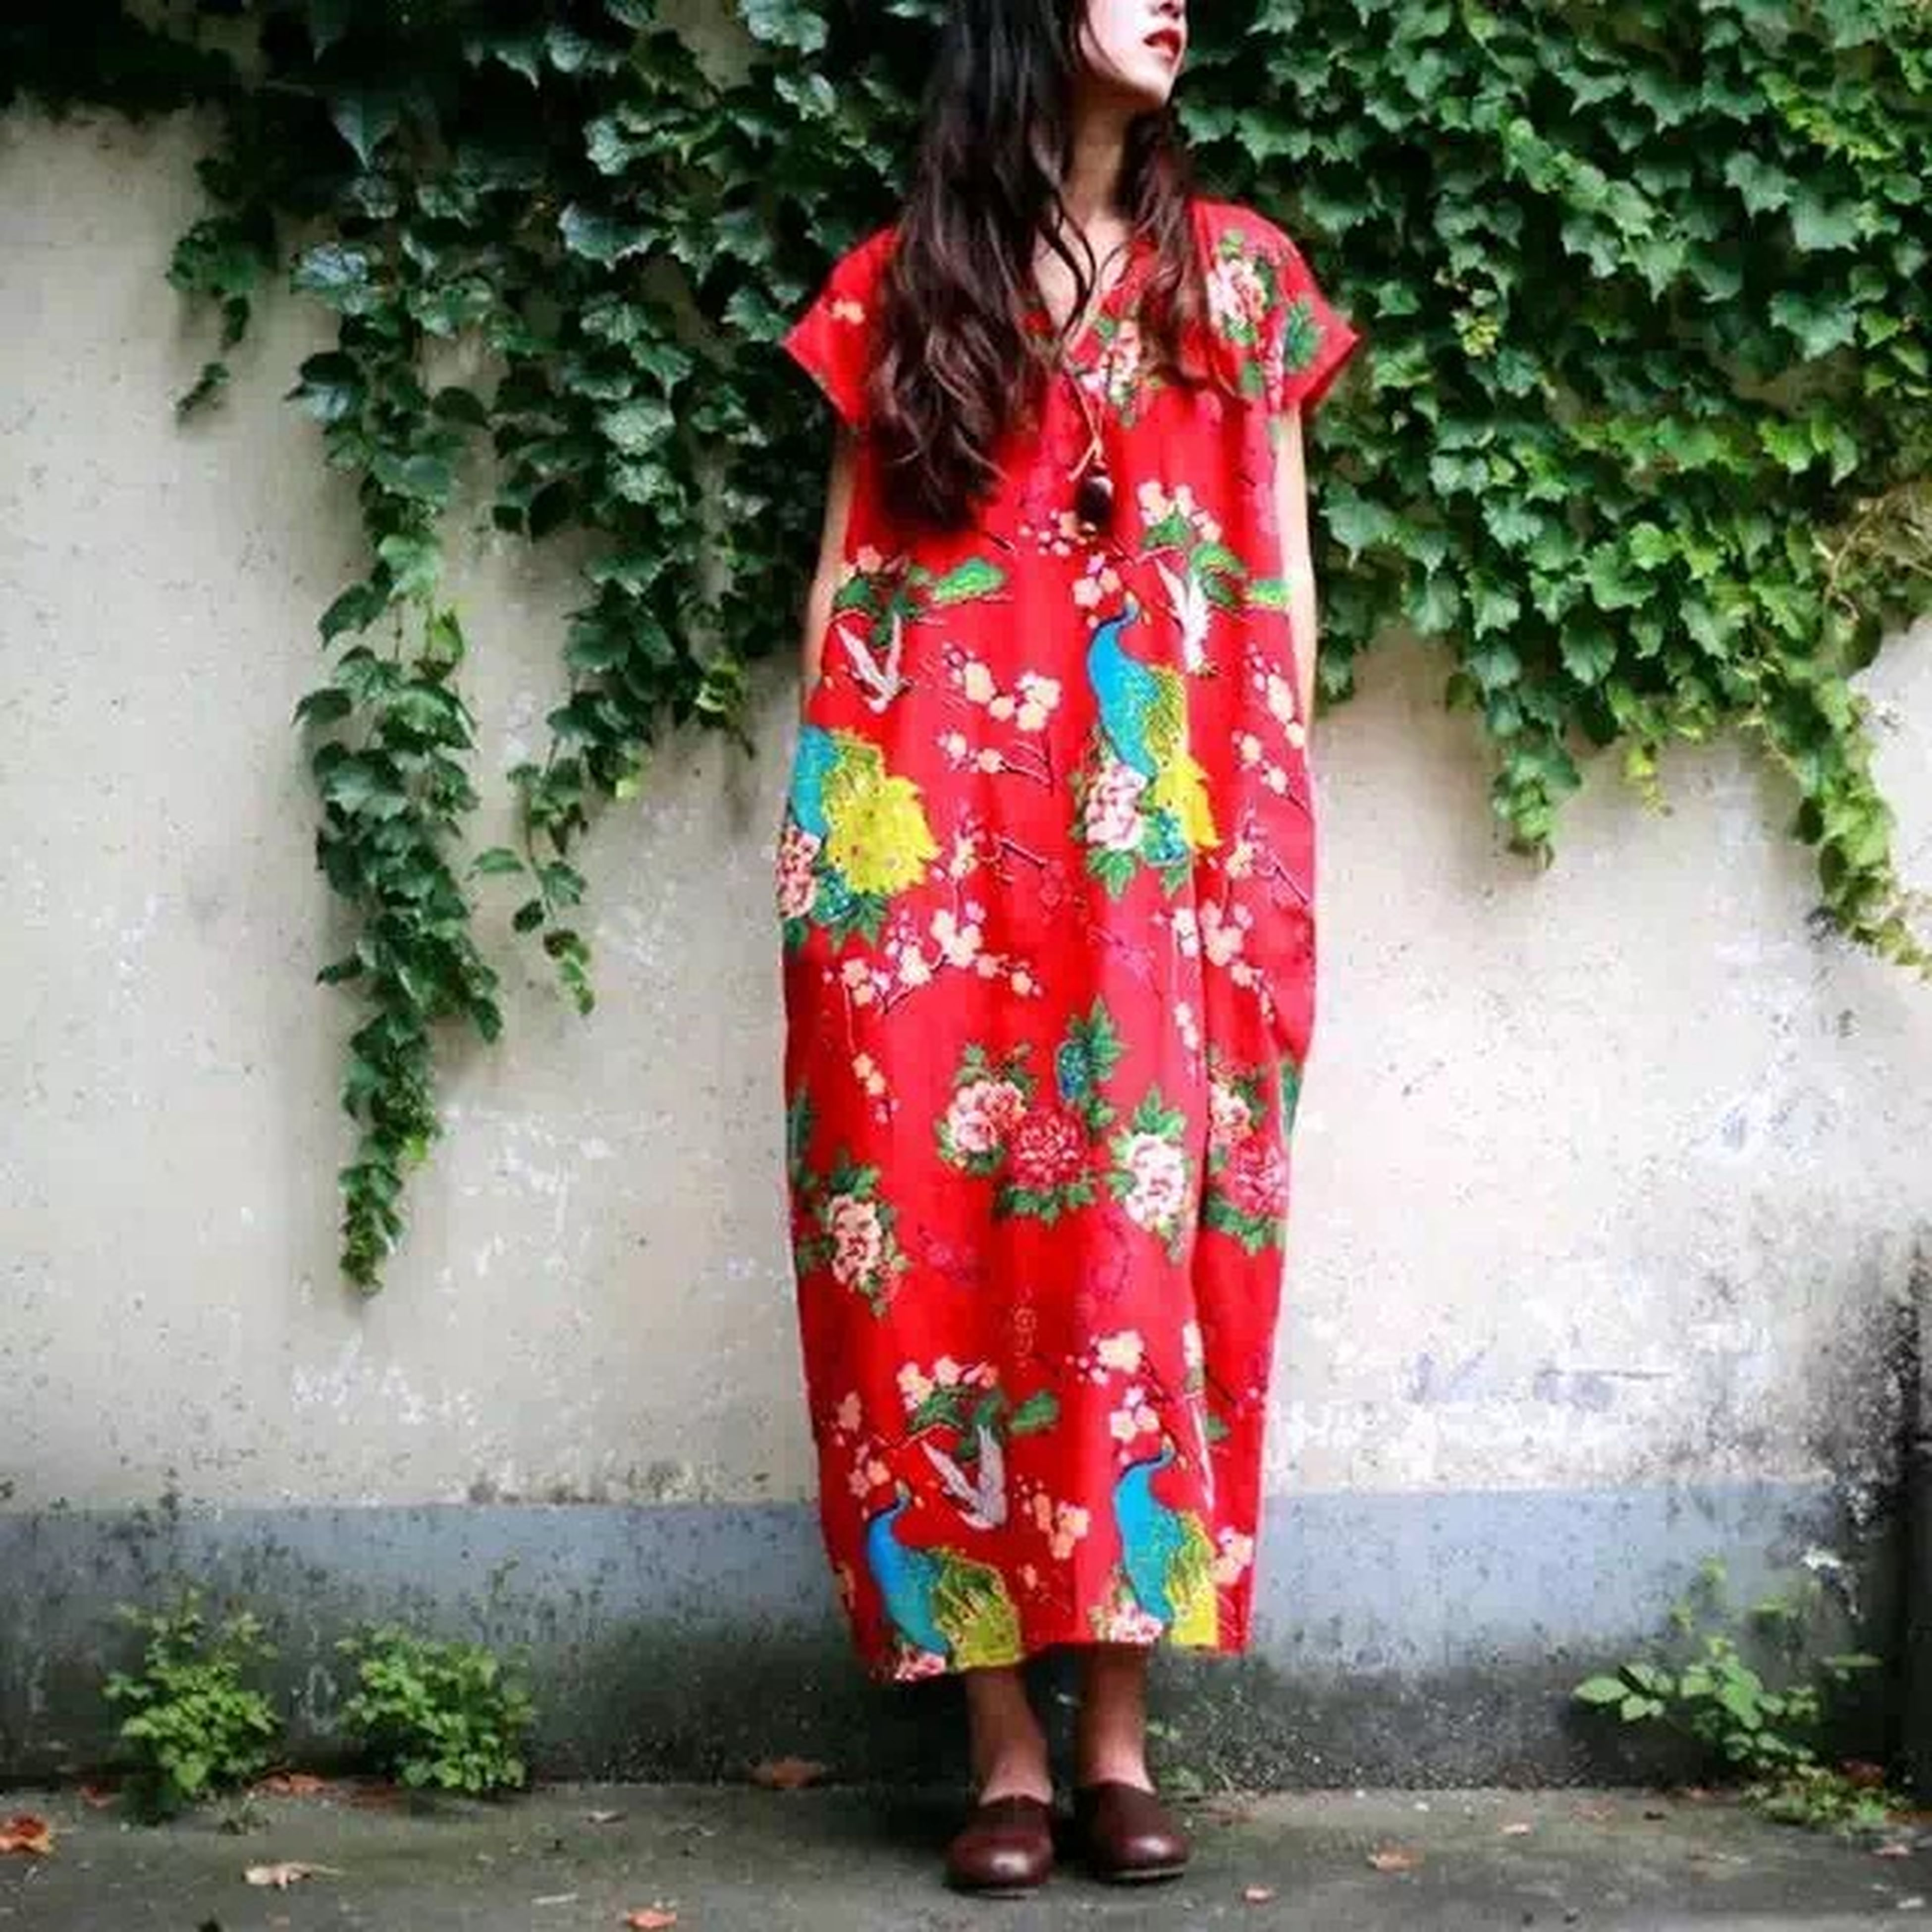 lifestyles, standing, casual clothing, wall - building feature, leisure activity, front view, red, full length, young adult, young women, person, built structure, wall, architecture, dress, three quarter length, plant